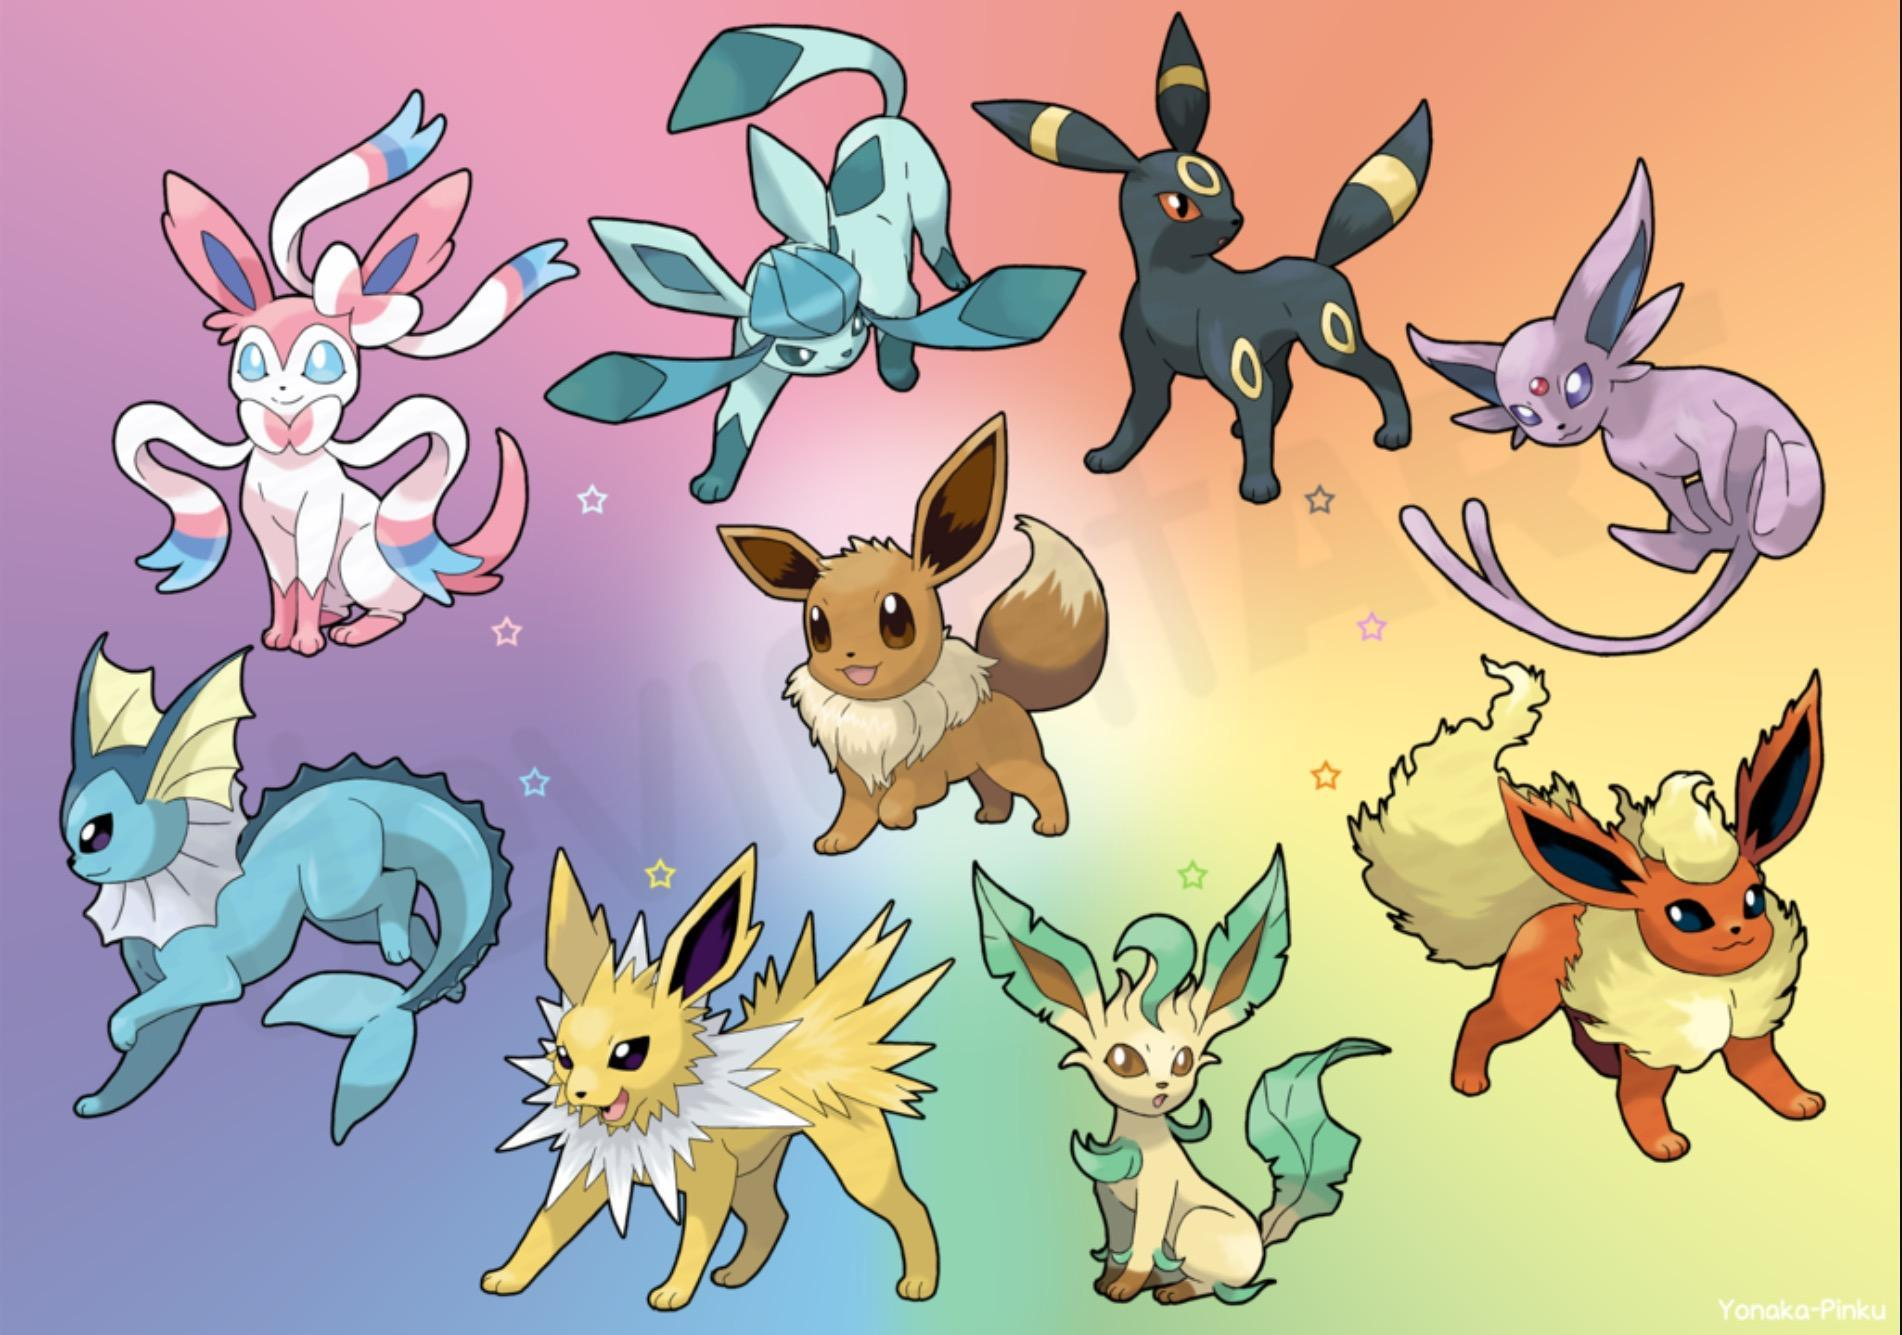 What Eeveelution are you most like?